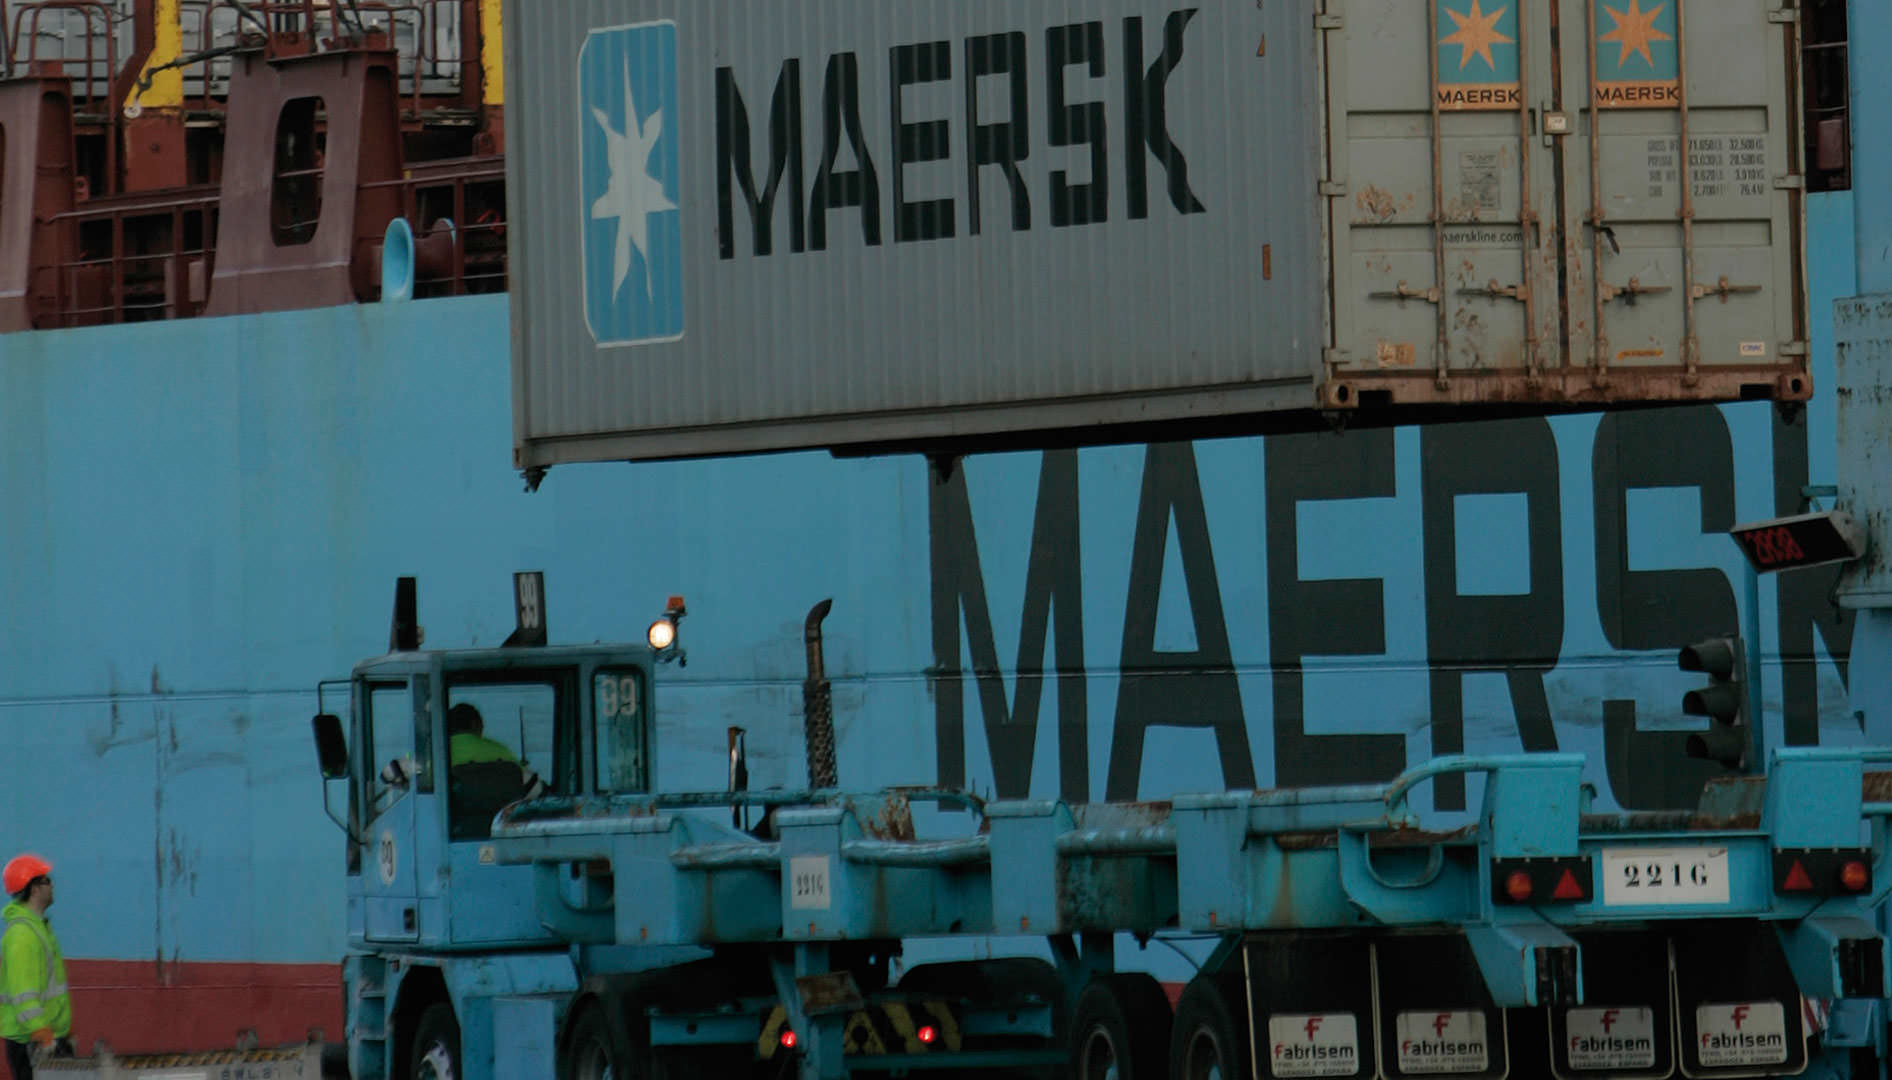 Stowing containers in the port of Algeciras.